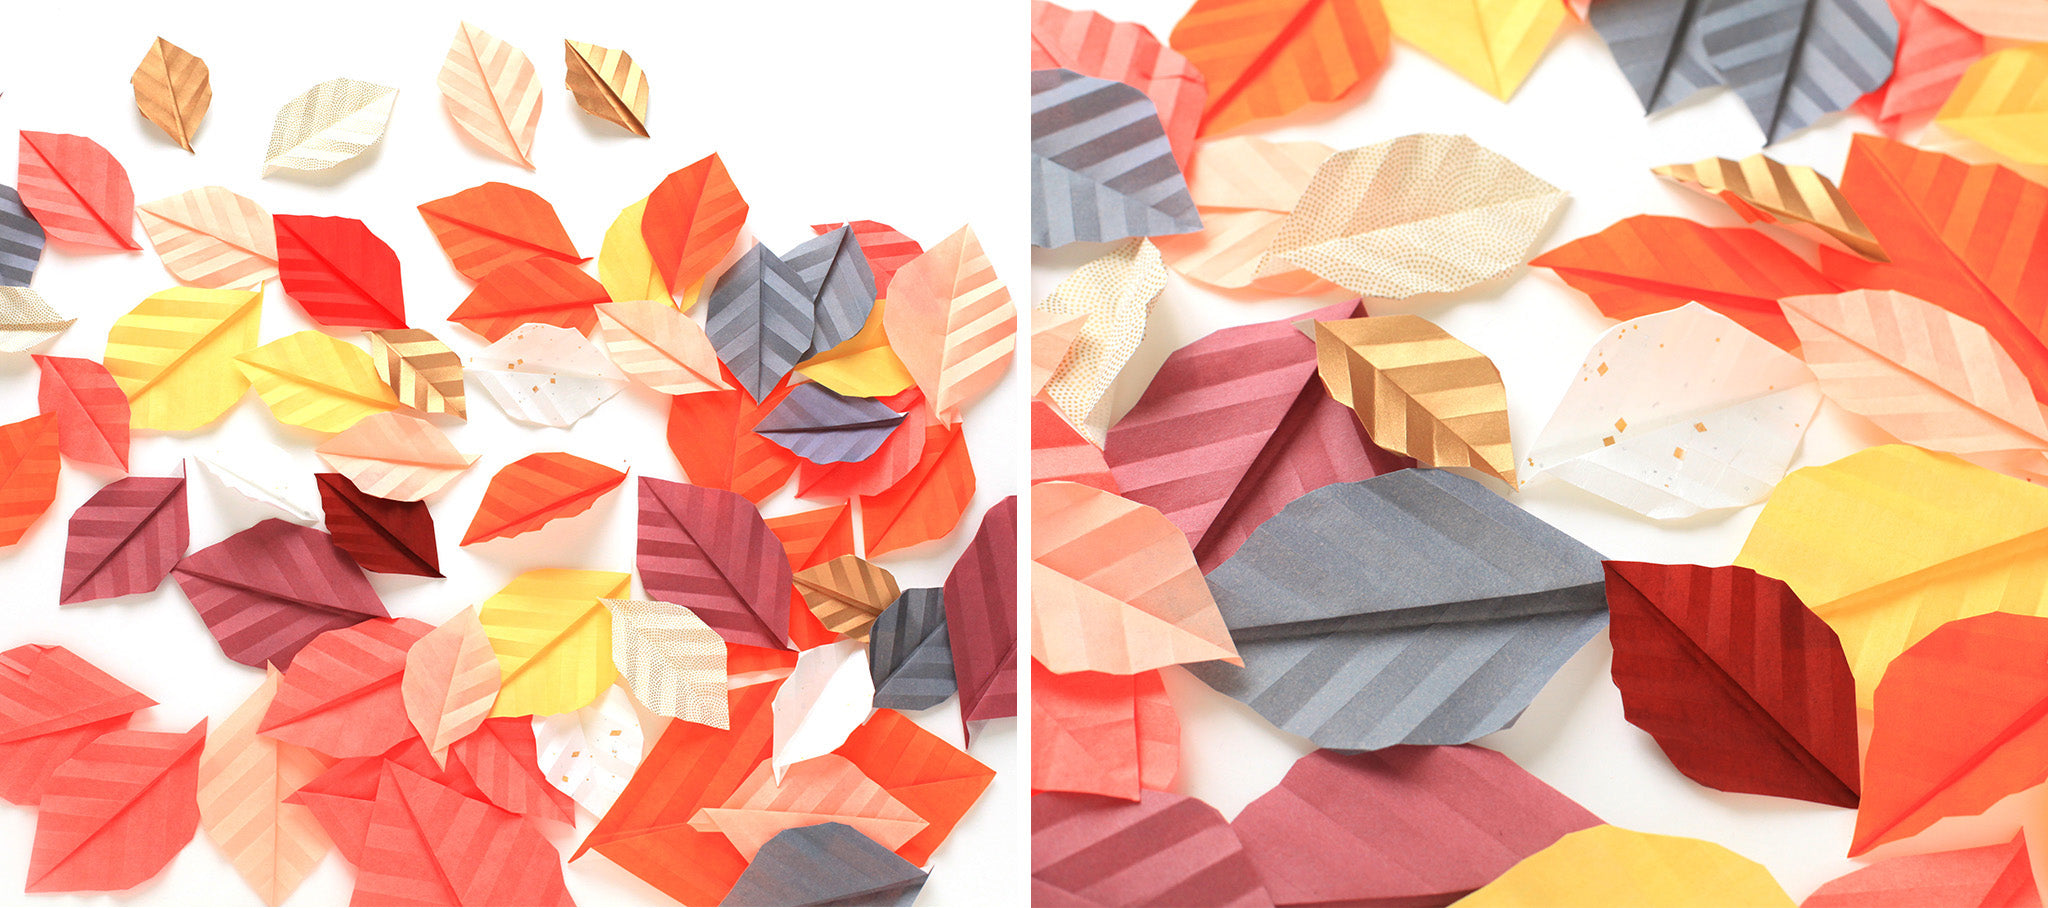 article-tuto-feuille-origami-ambiance-3